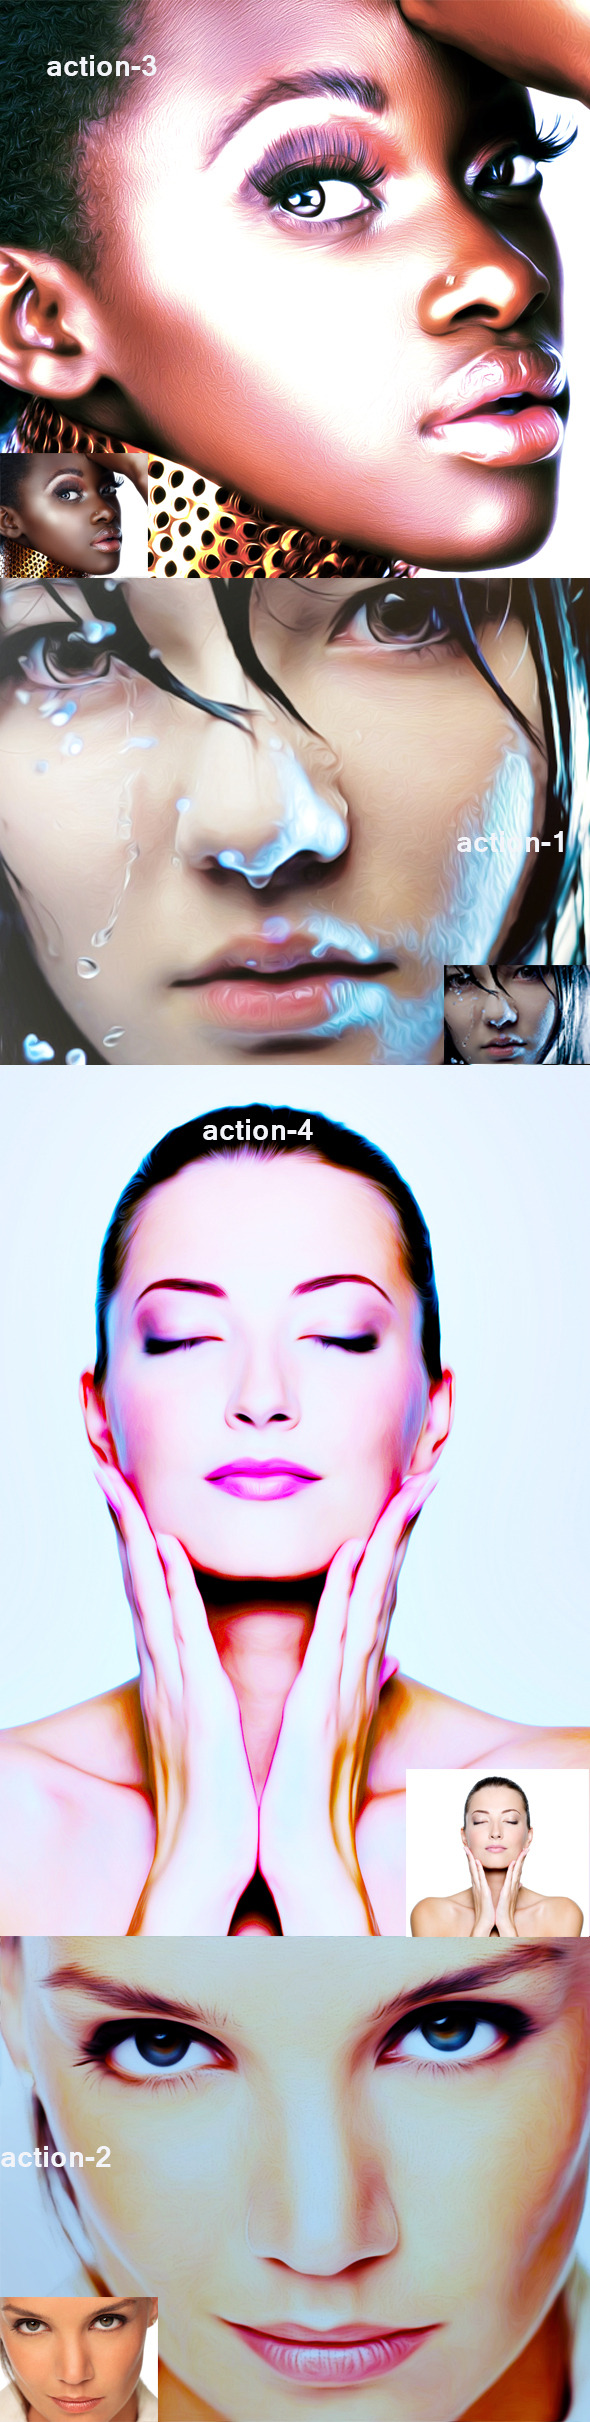 GraphicRiver Oil Action 5 9937490